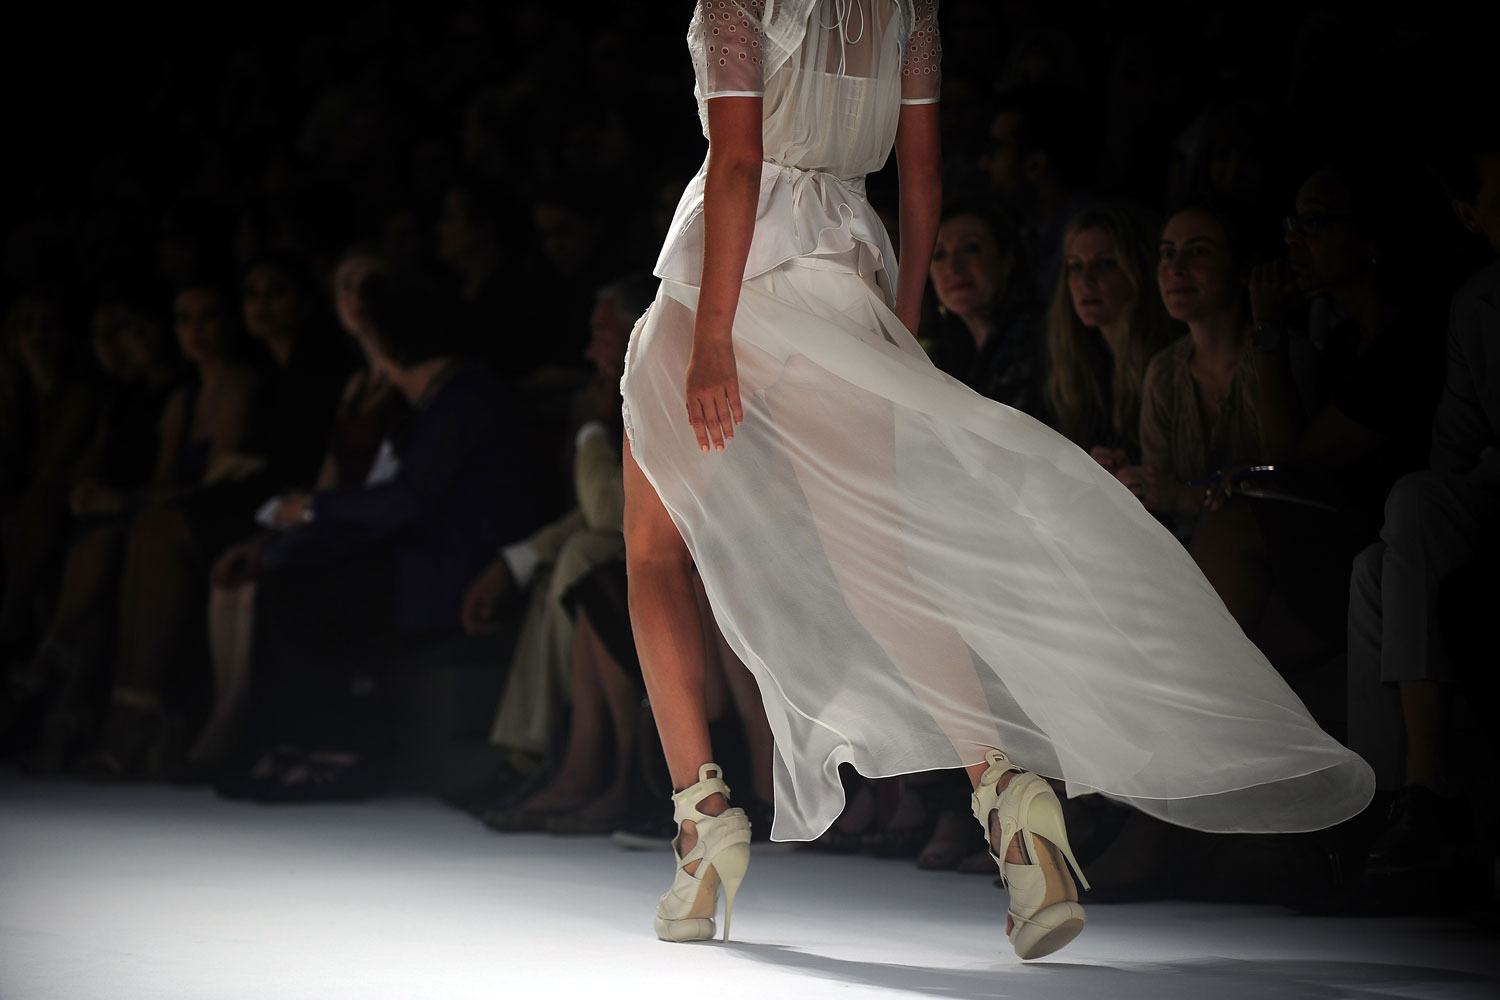 September 13, 2011. A model displays a creation by designer Vera Wang during the New York Mercedes-Benz Fashion Week Spring 2012, in New York.